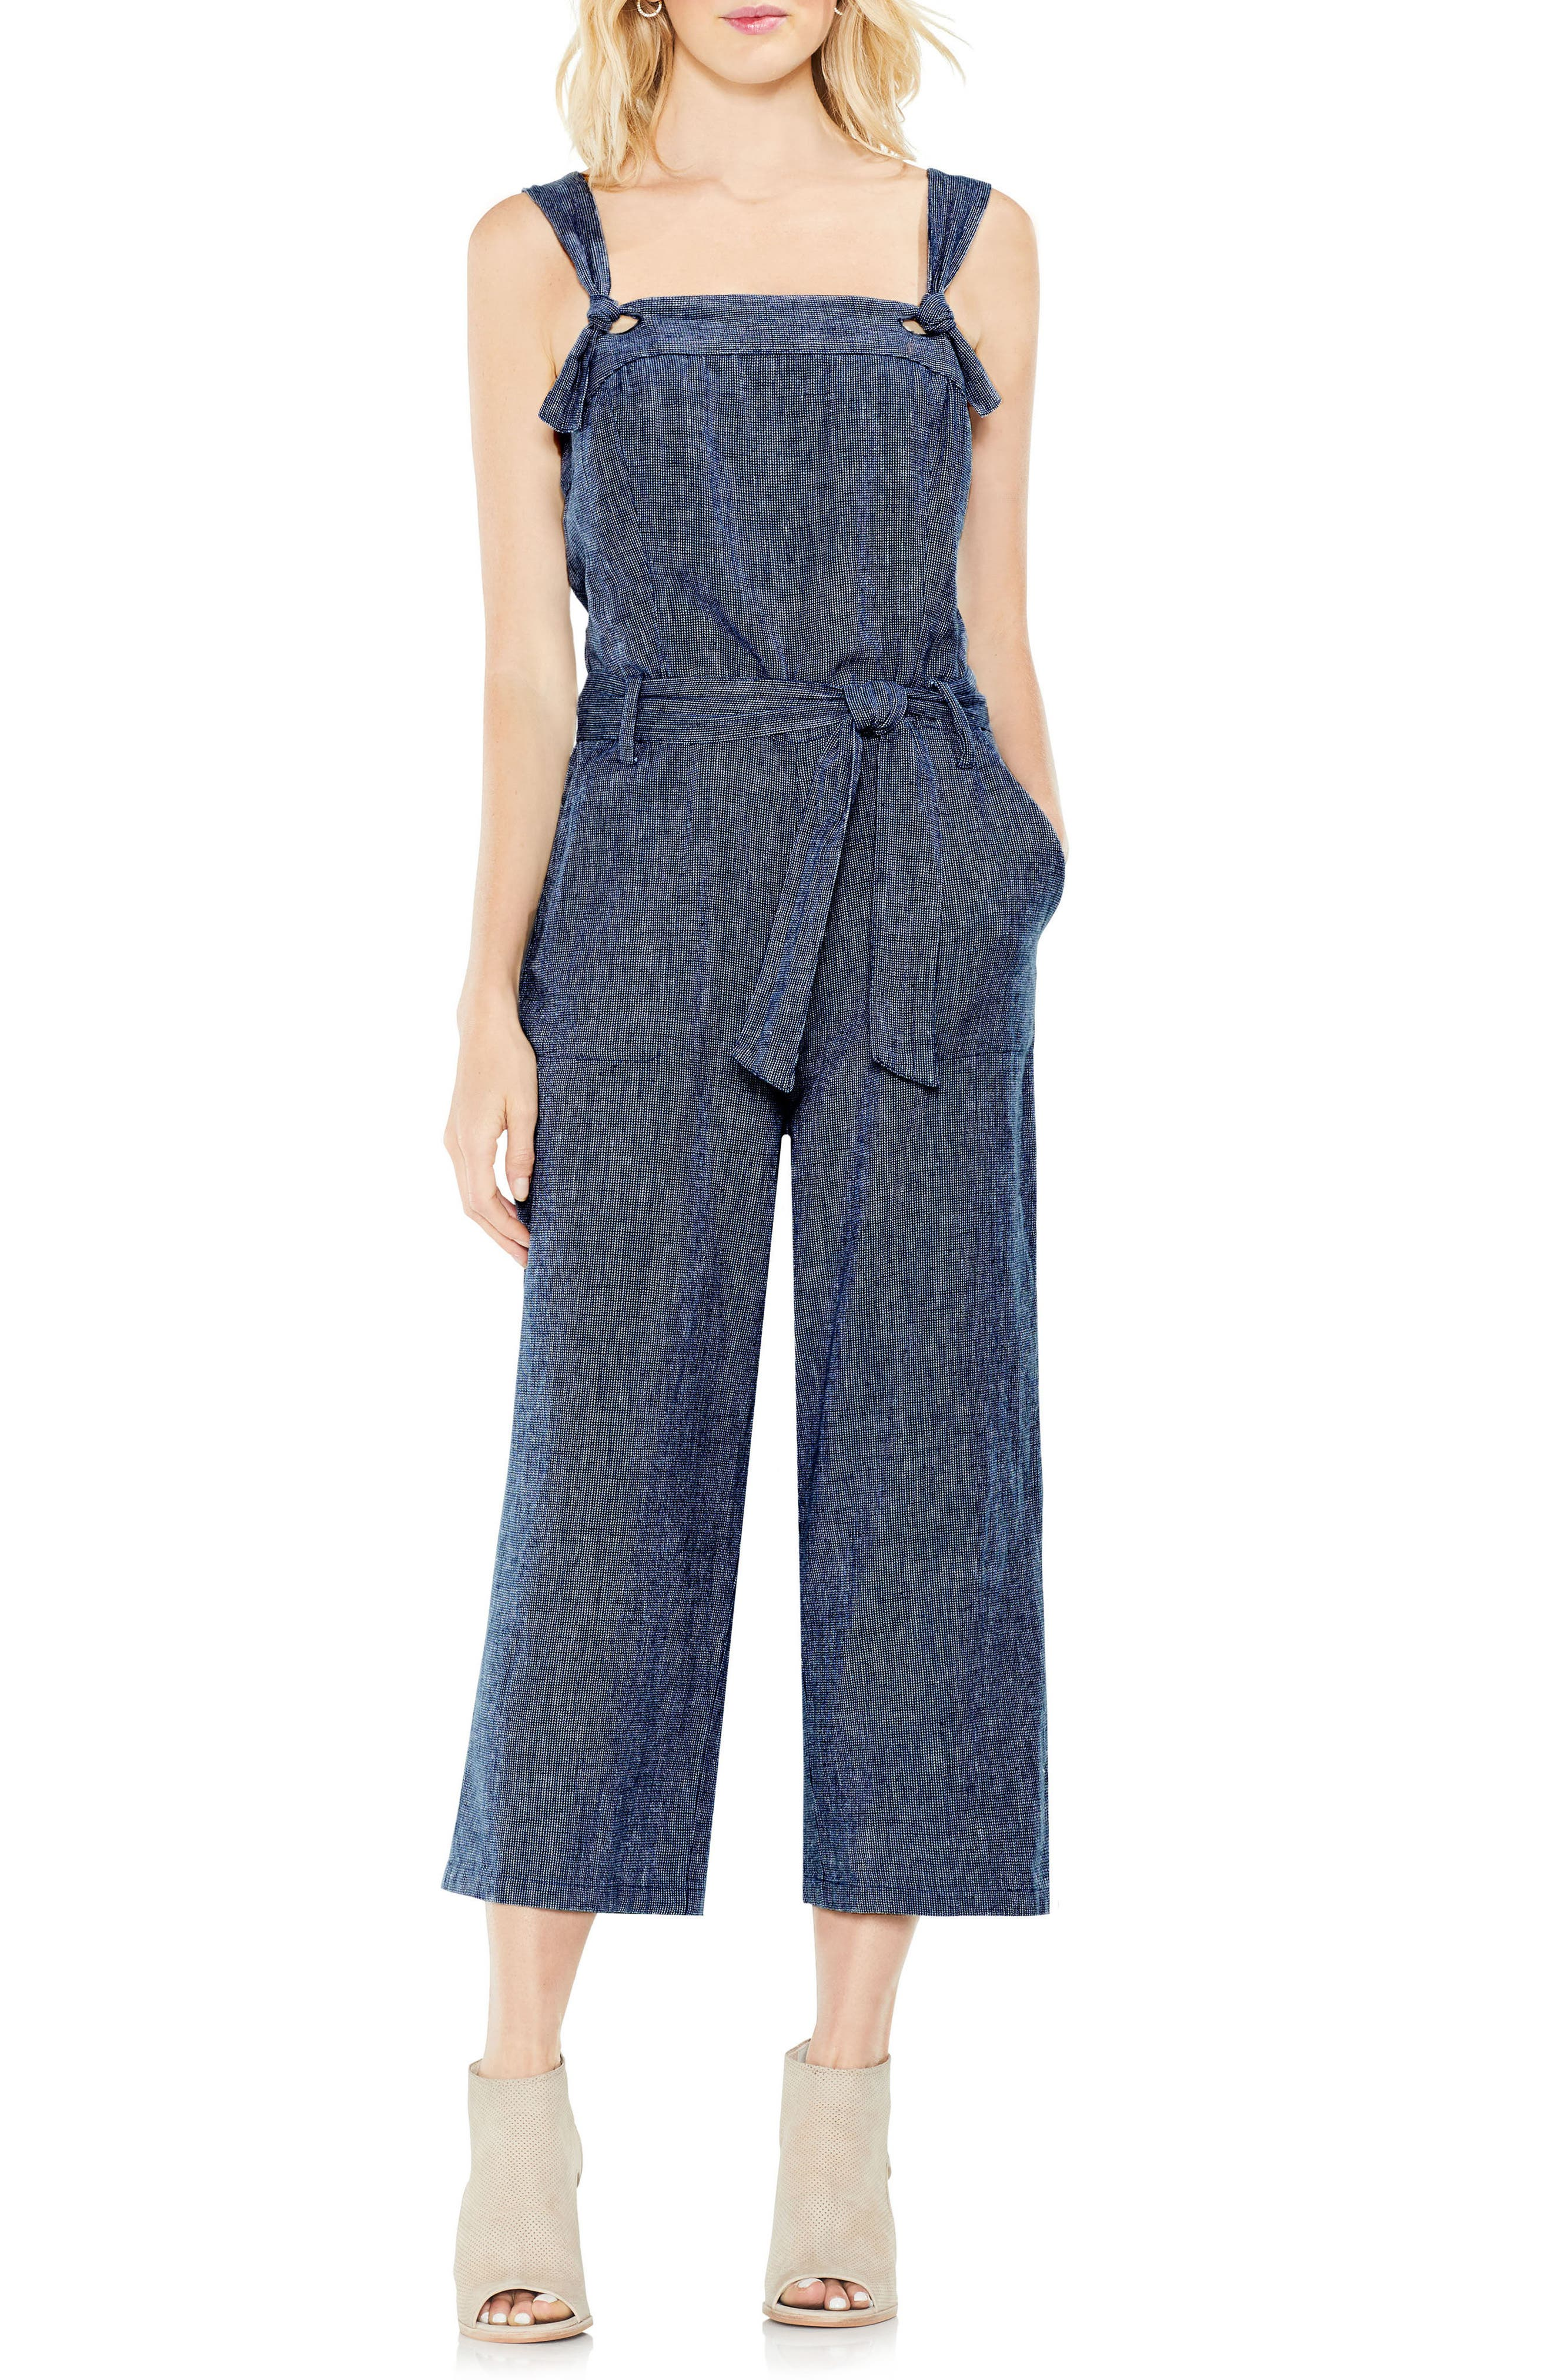 Alternate Image 1 Selected - Two by Vince Camuto Linen Belted Jumpsuit